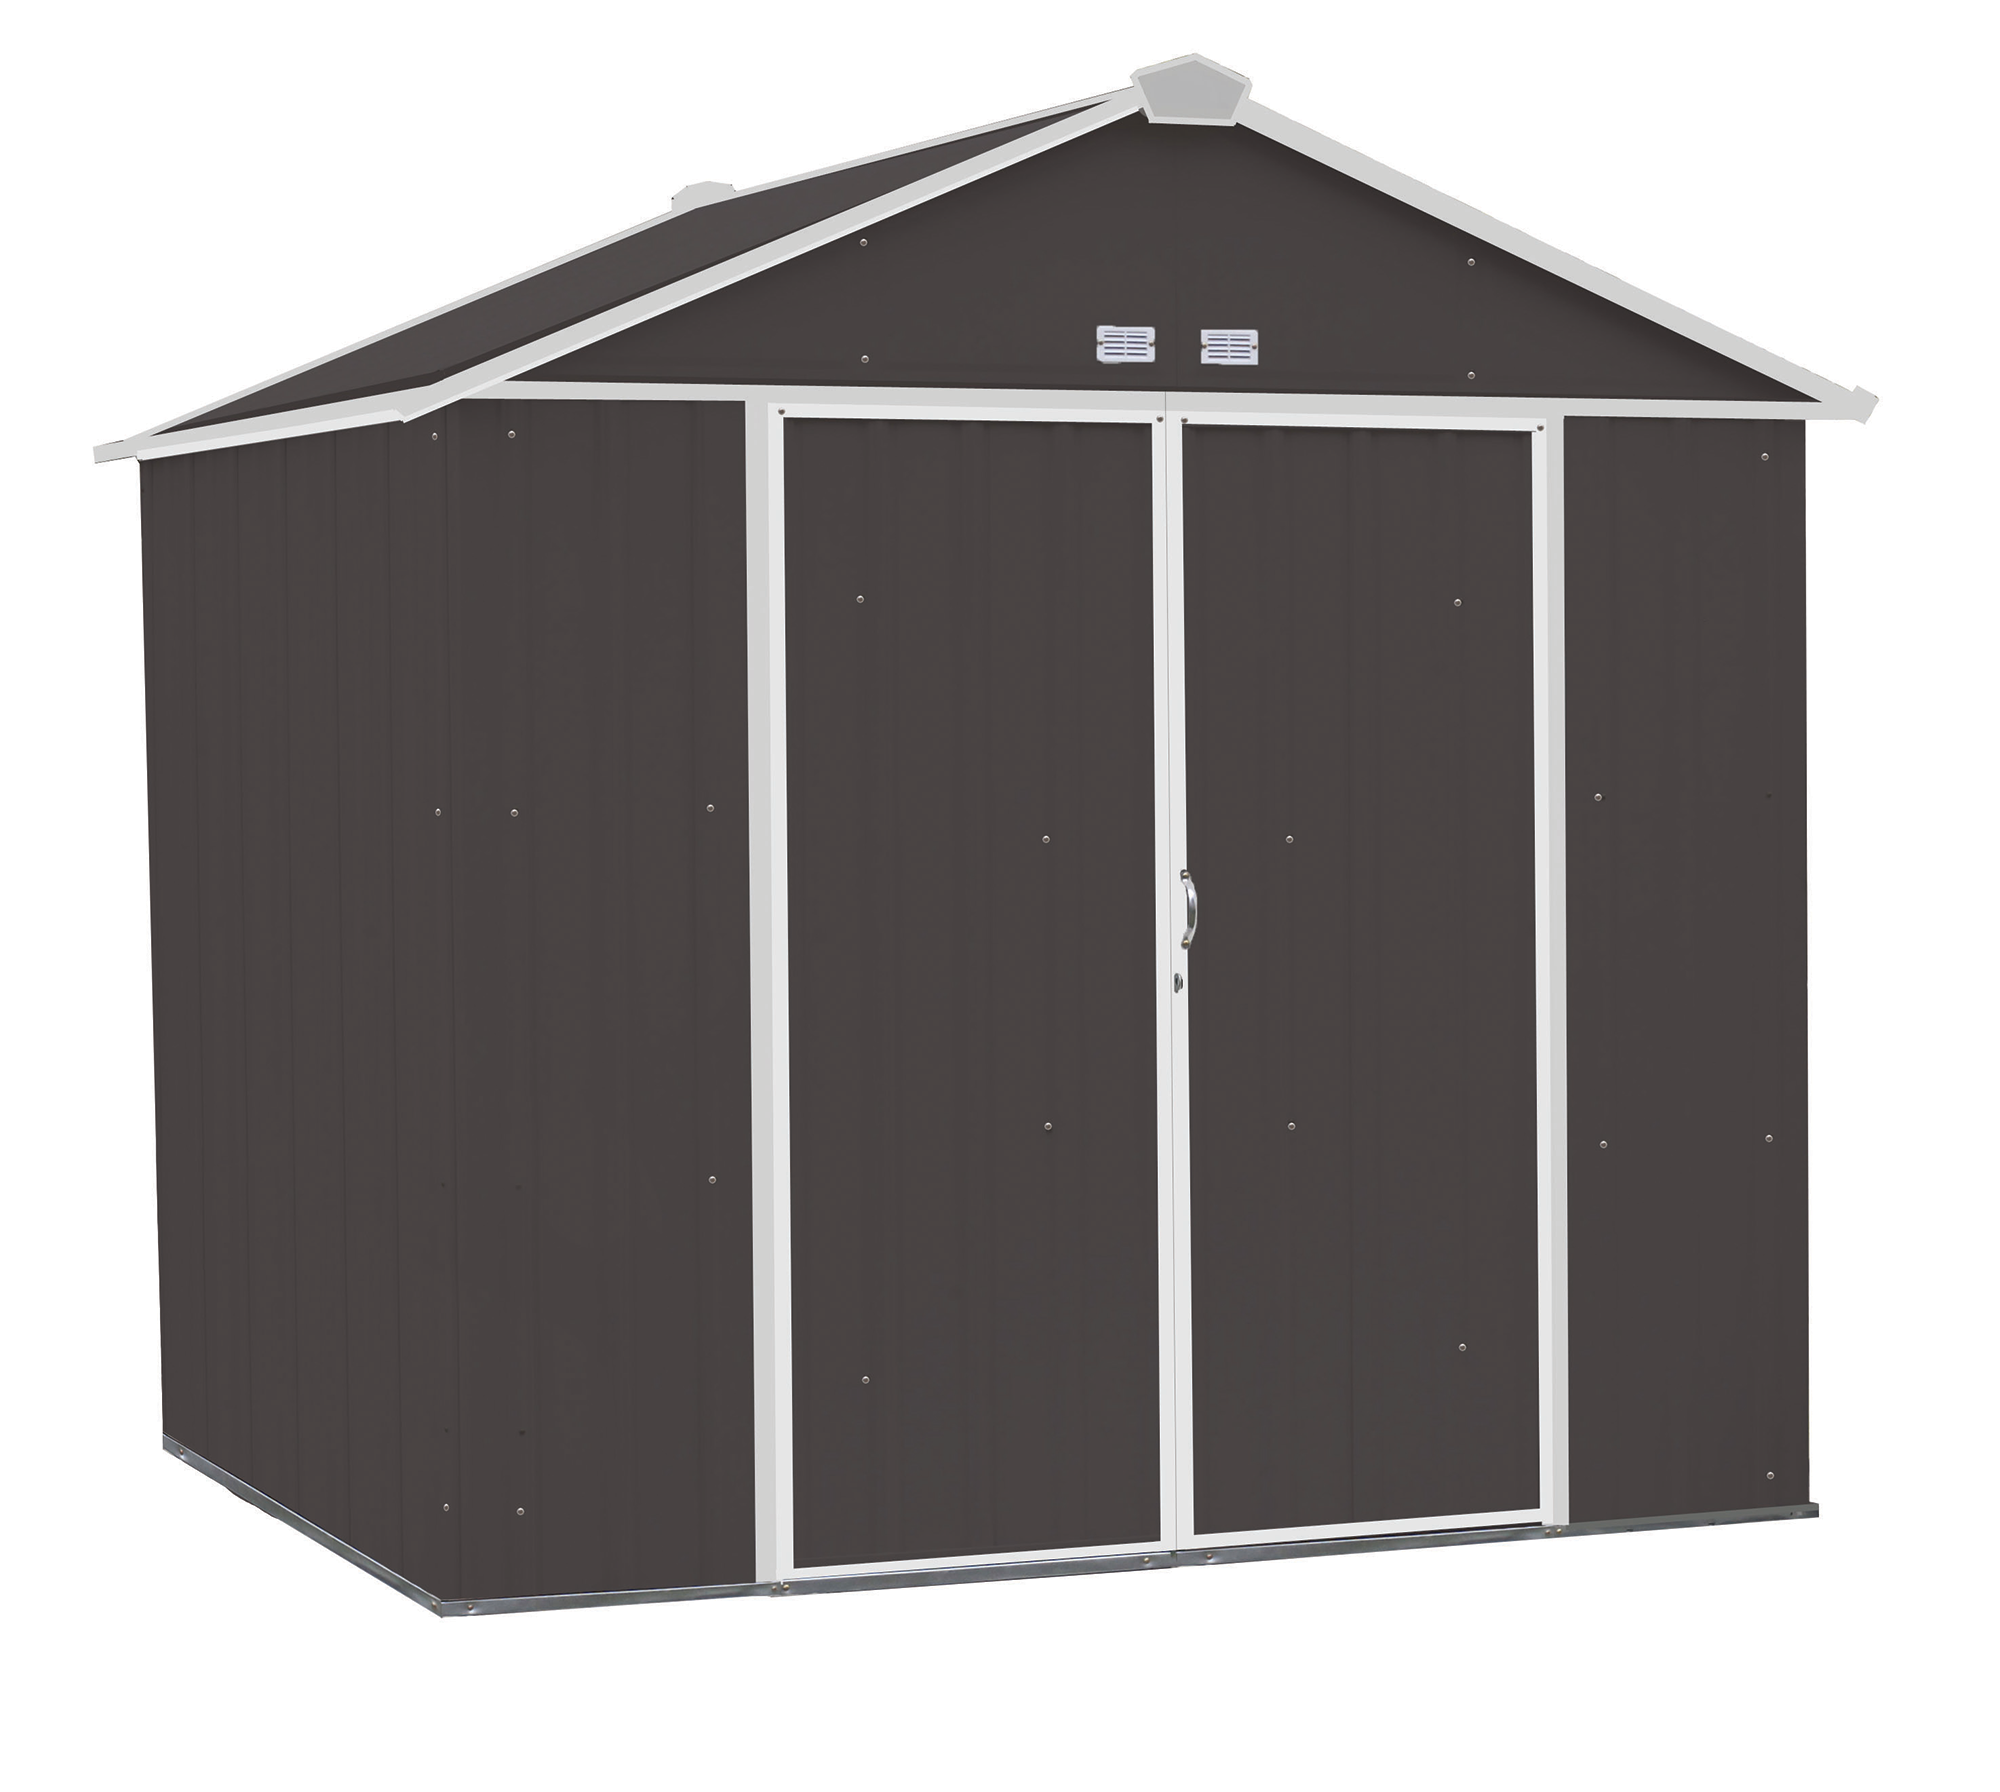 Steel Storage Shed 8 x 7 ft. Galvanized High Gable Charcoal/Cream Trim